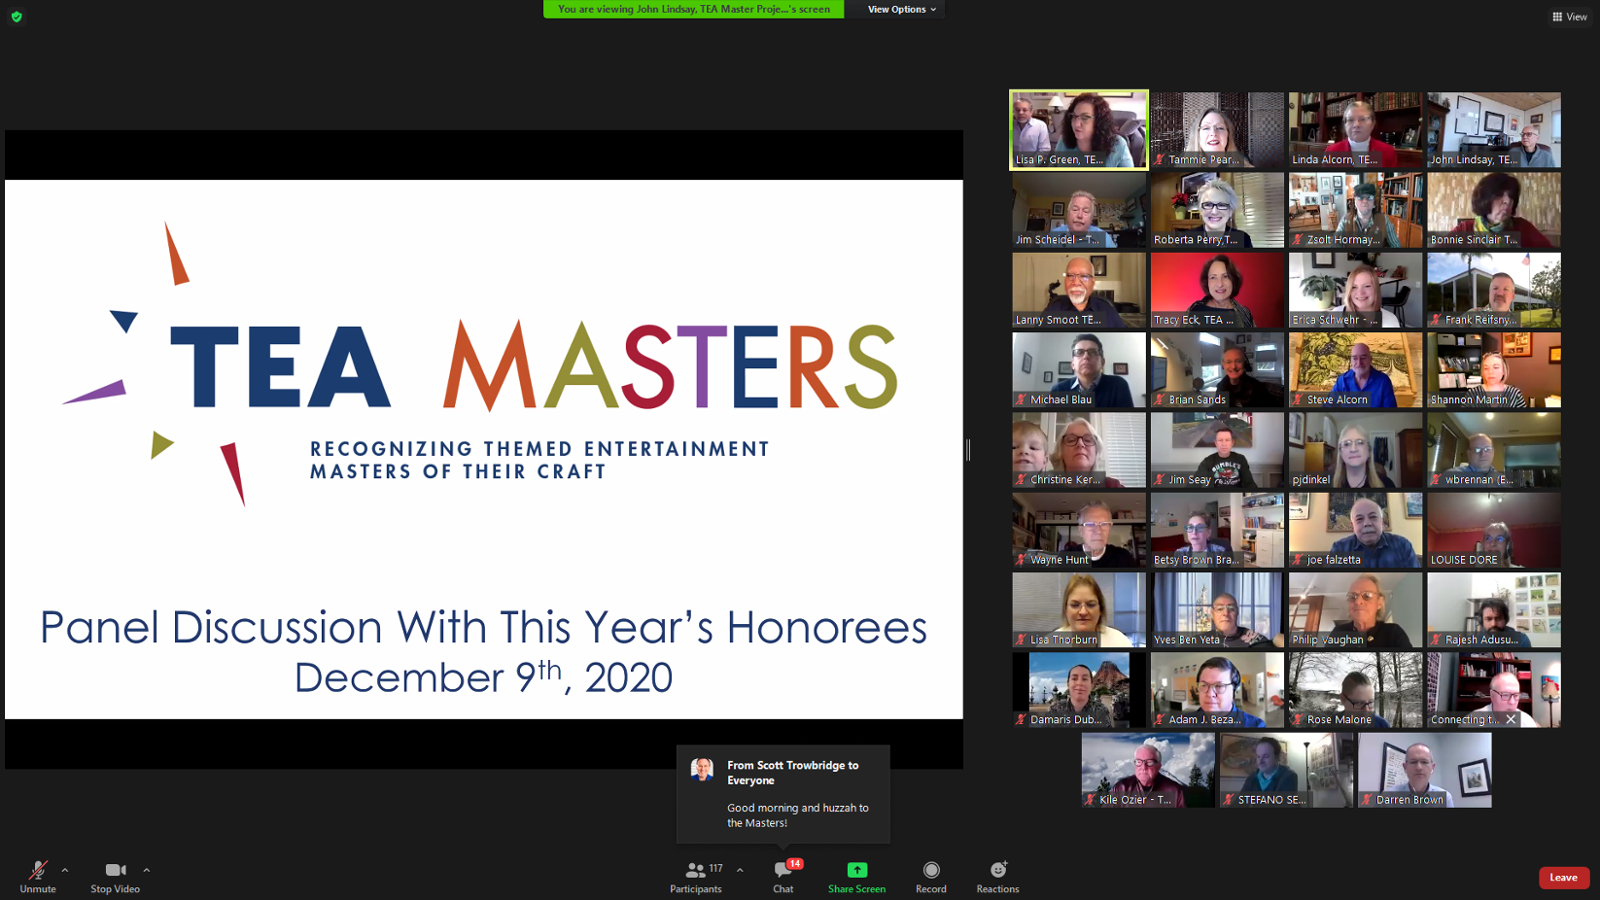 2020 TEA Masters Honored on December 9th - Looking Towards the Future